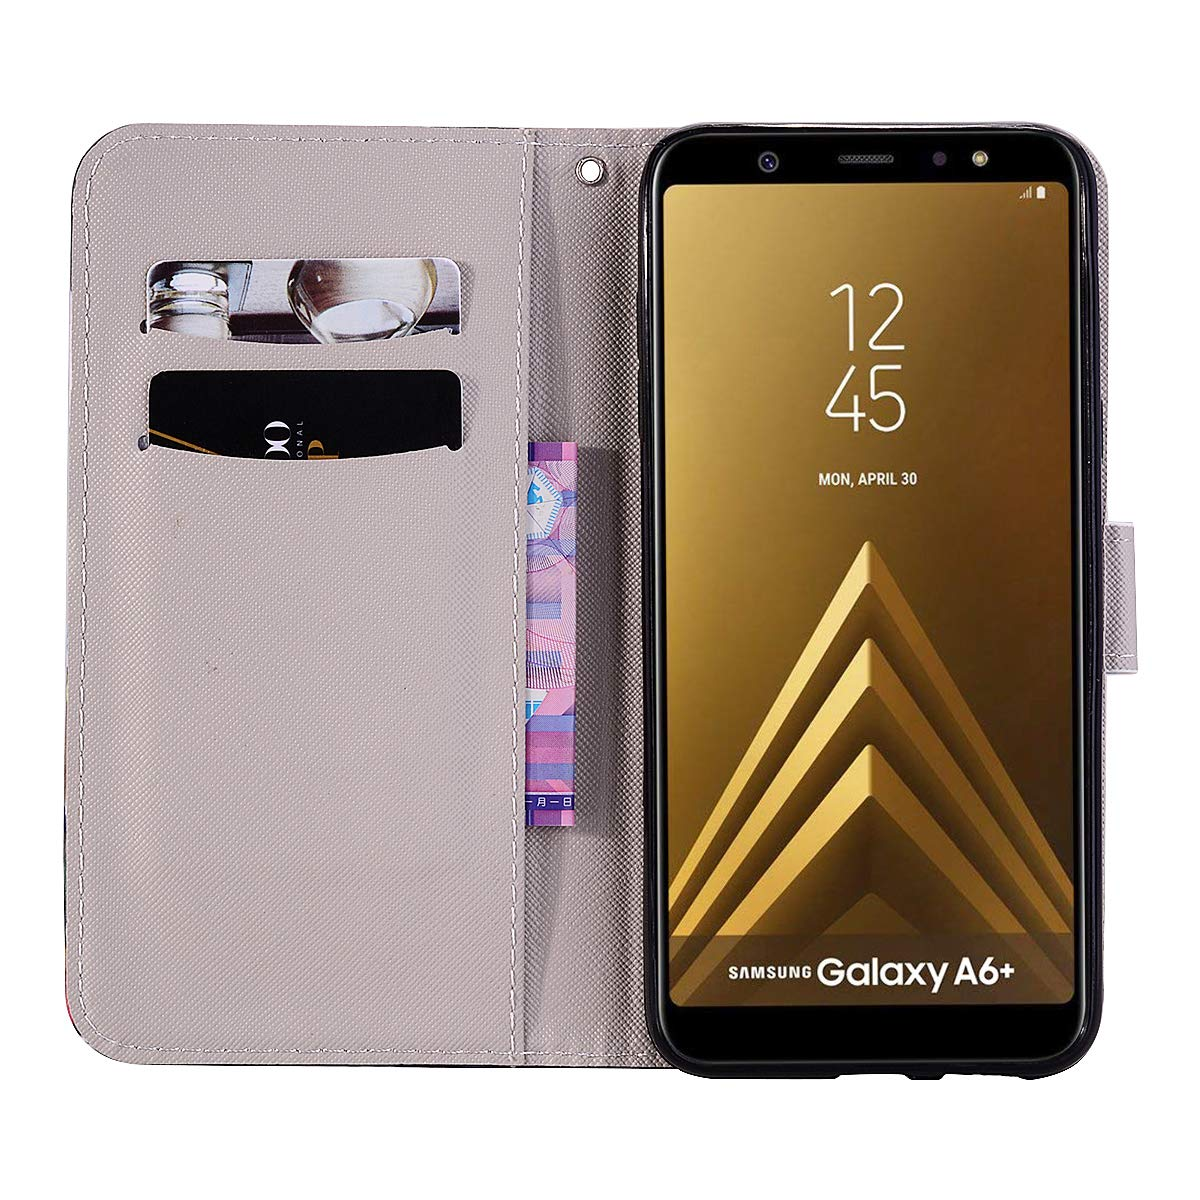 Carcasa para Samsung Galaxy A6 Plus 2018 Smart silicona PU carcasa unique design suave PU Soft Cover Borrar Clair Transparente con funda Case (+ Outdoor ...